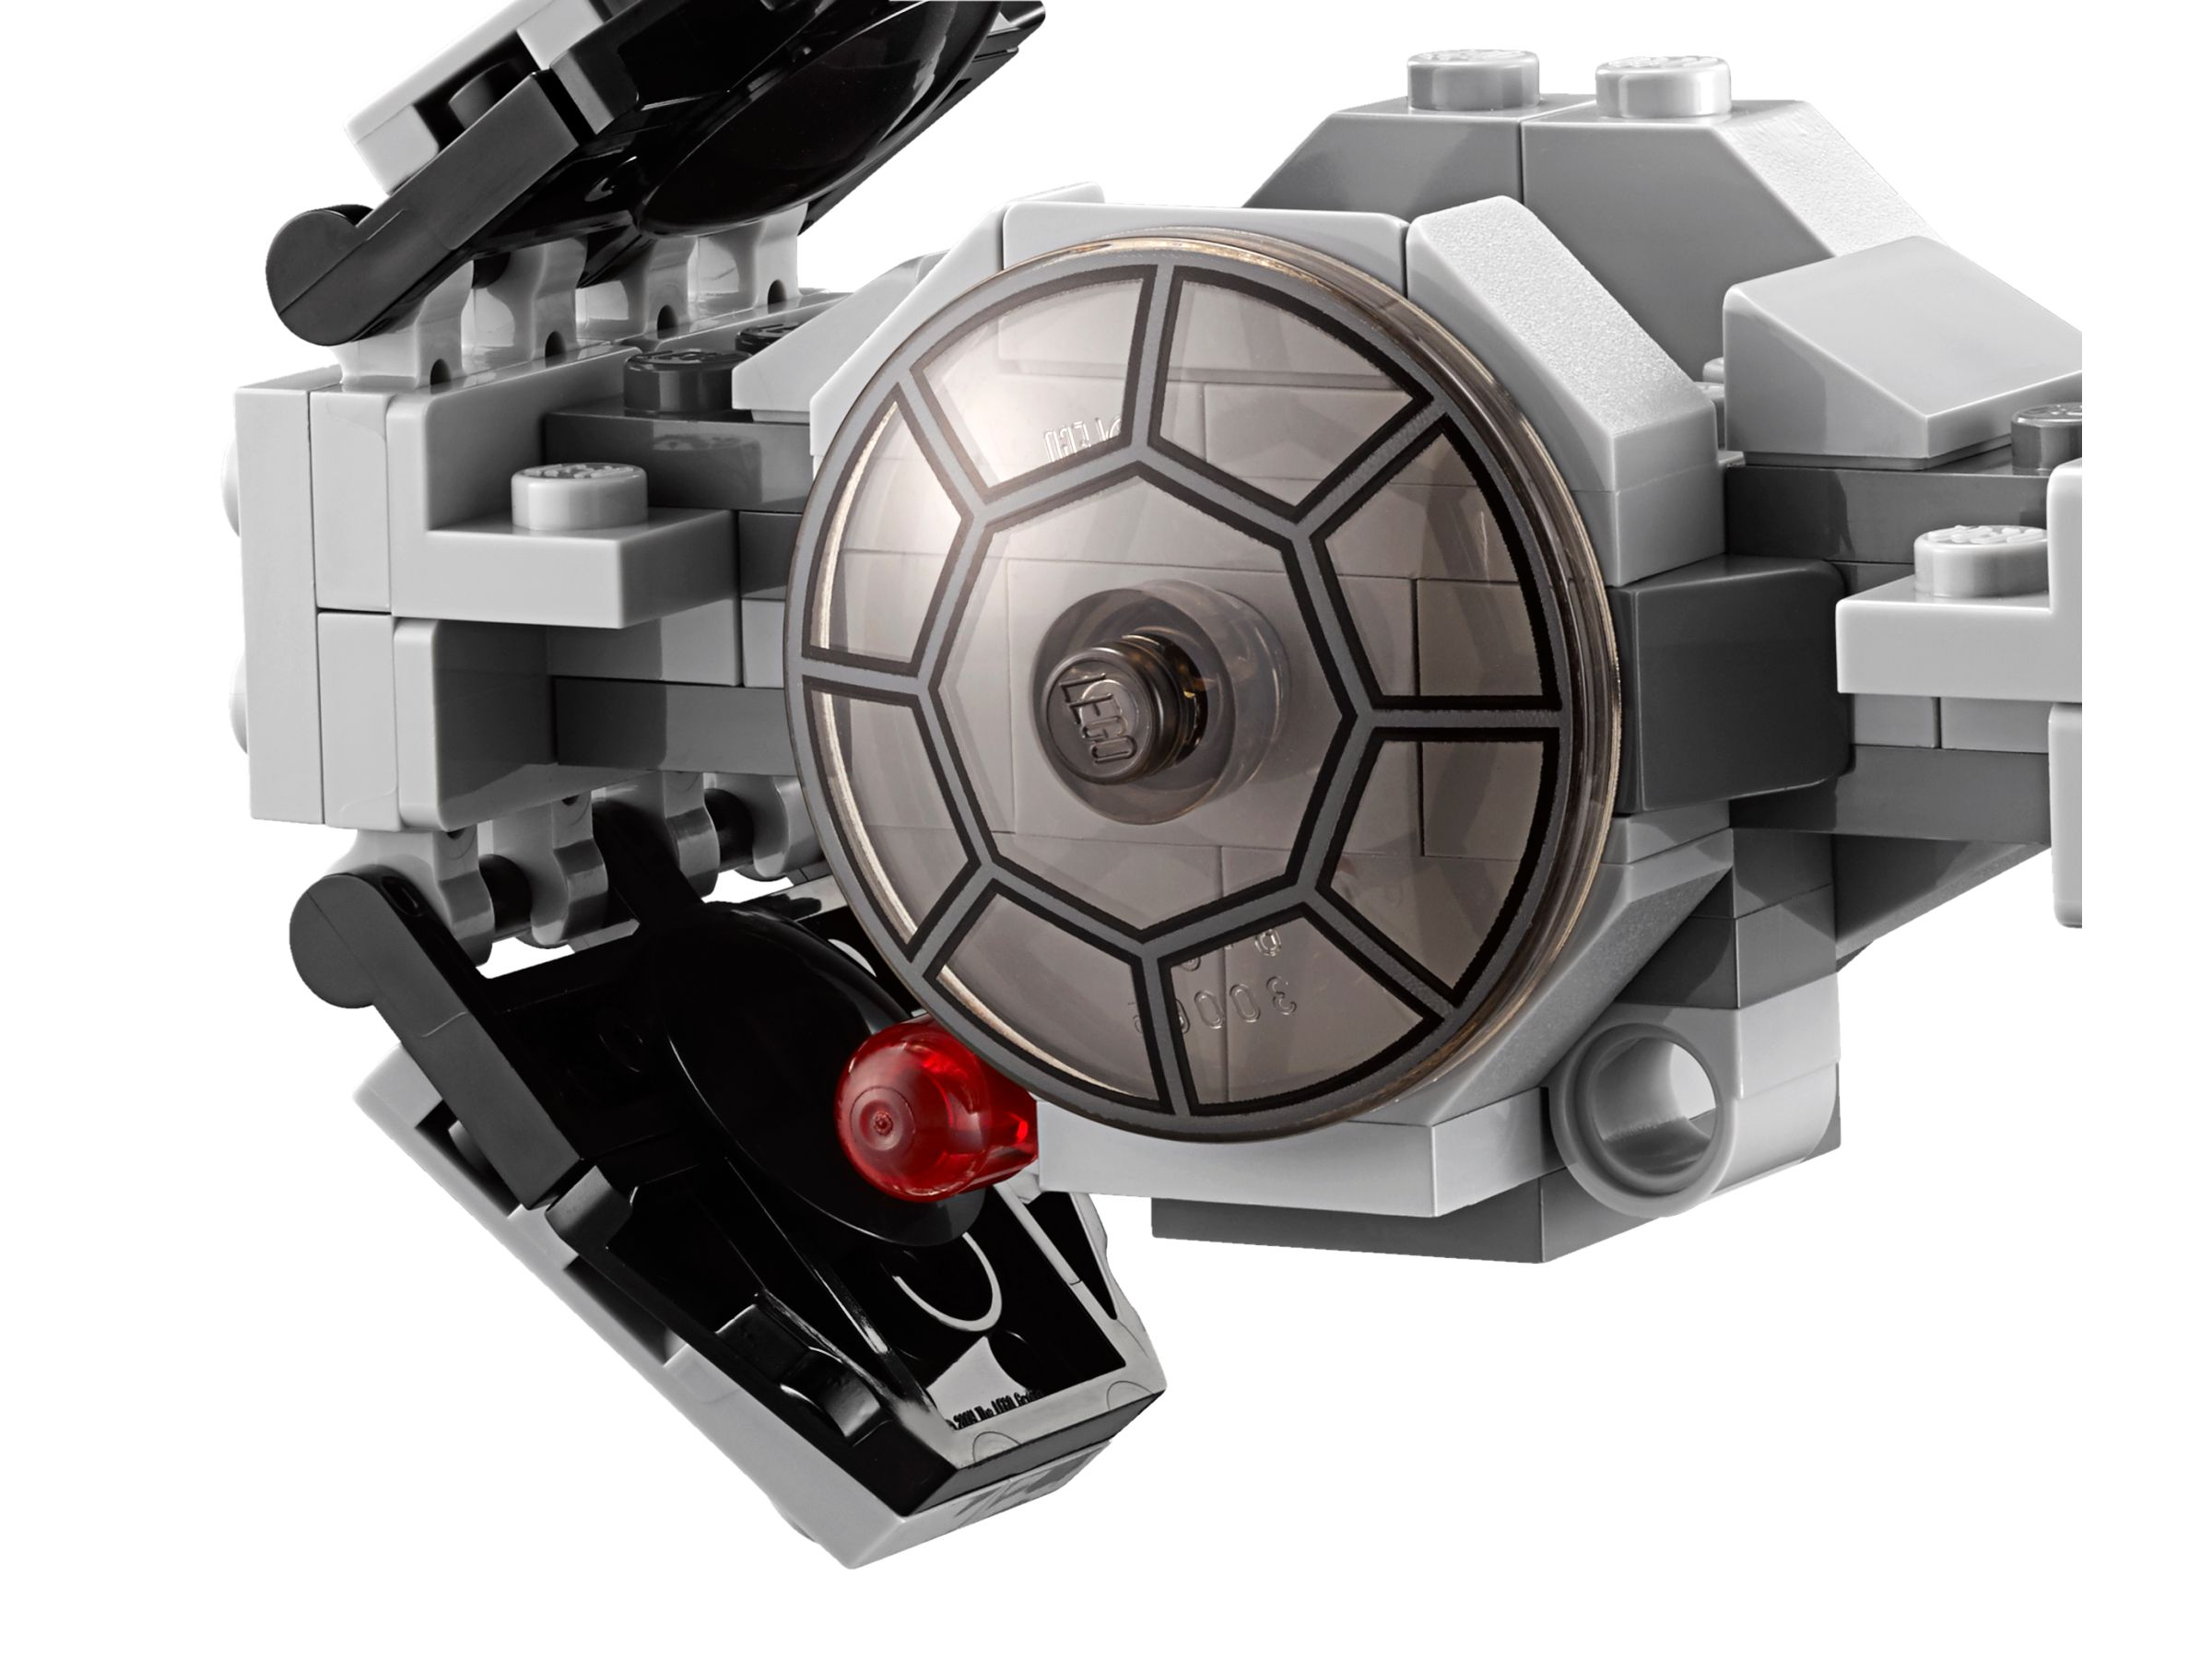 LEGO Star Wars 75128 TIE Advanced Prototype™ LEGO_75128_alt4.jpg